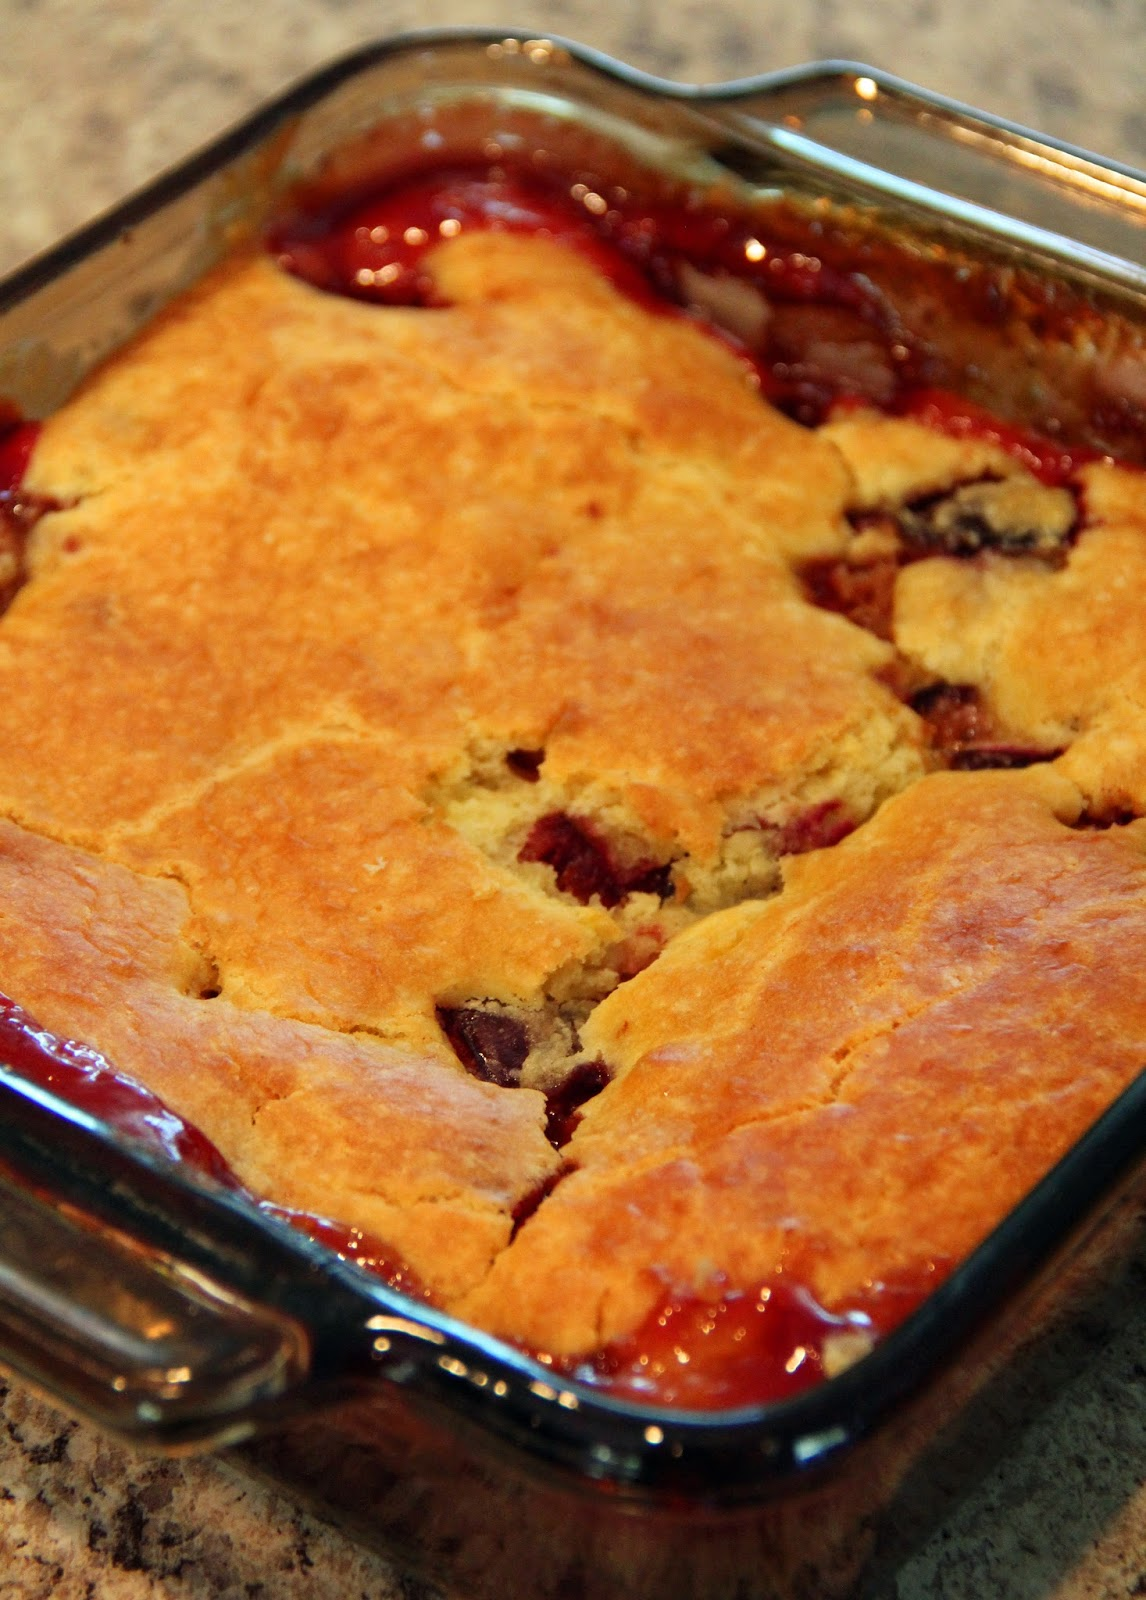 Jo and Sue: Plum Cobbler and Plum Crisp